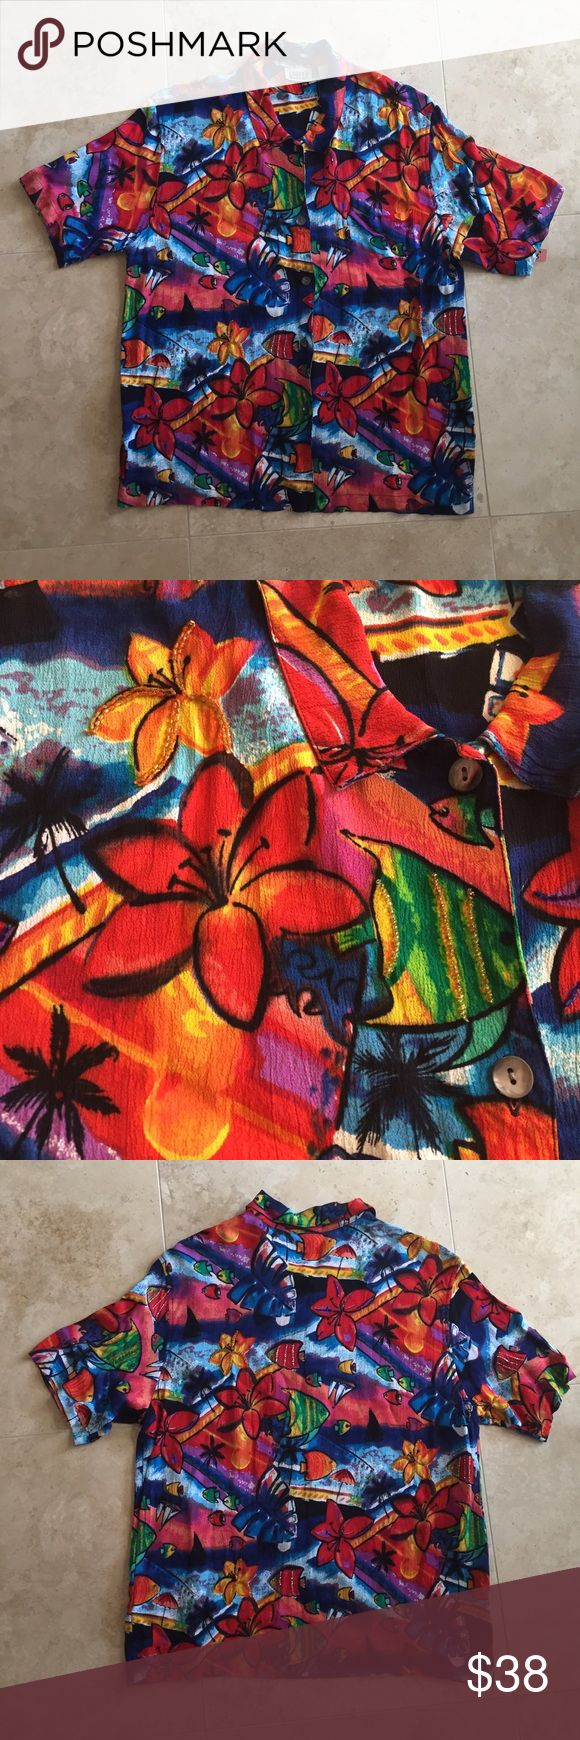 Chicos Hawaiian aloha beaded novelty print XL Beautiful vibrant Hawaiian tropical print with beading and sequins randomly place. Some beading/sequins may be missing, but is unnoticeable since of the random placement.  Measurements:  Length: ~27inches Armpit-armpit ~22.5inches Sleeve ~5inches (Measured from armpit) Chico's Tops Button Down Shirts